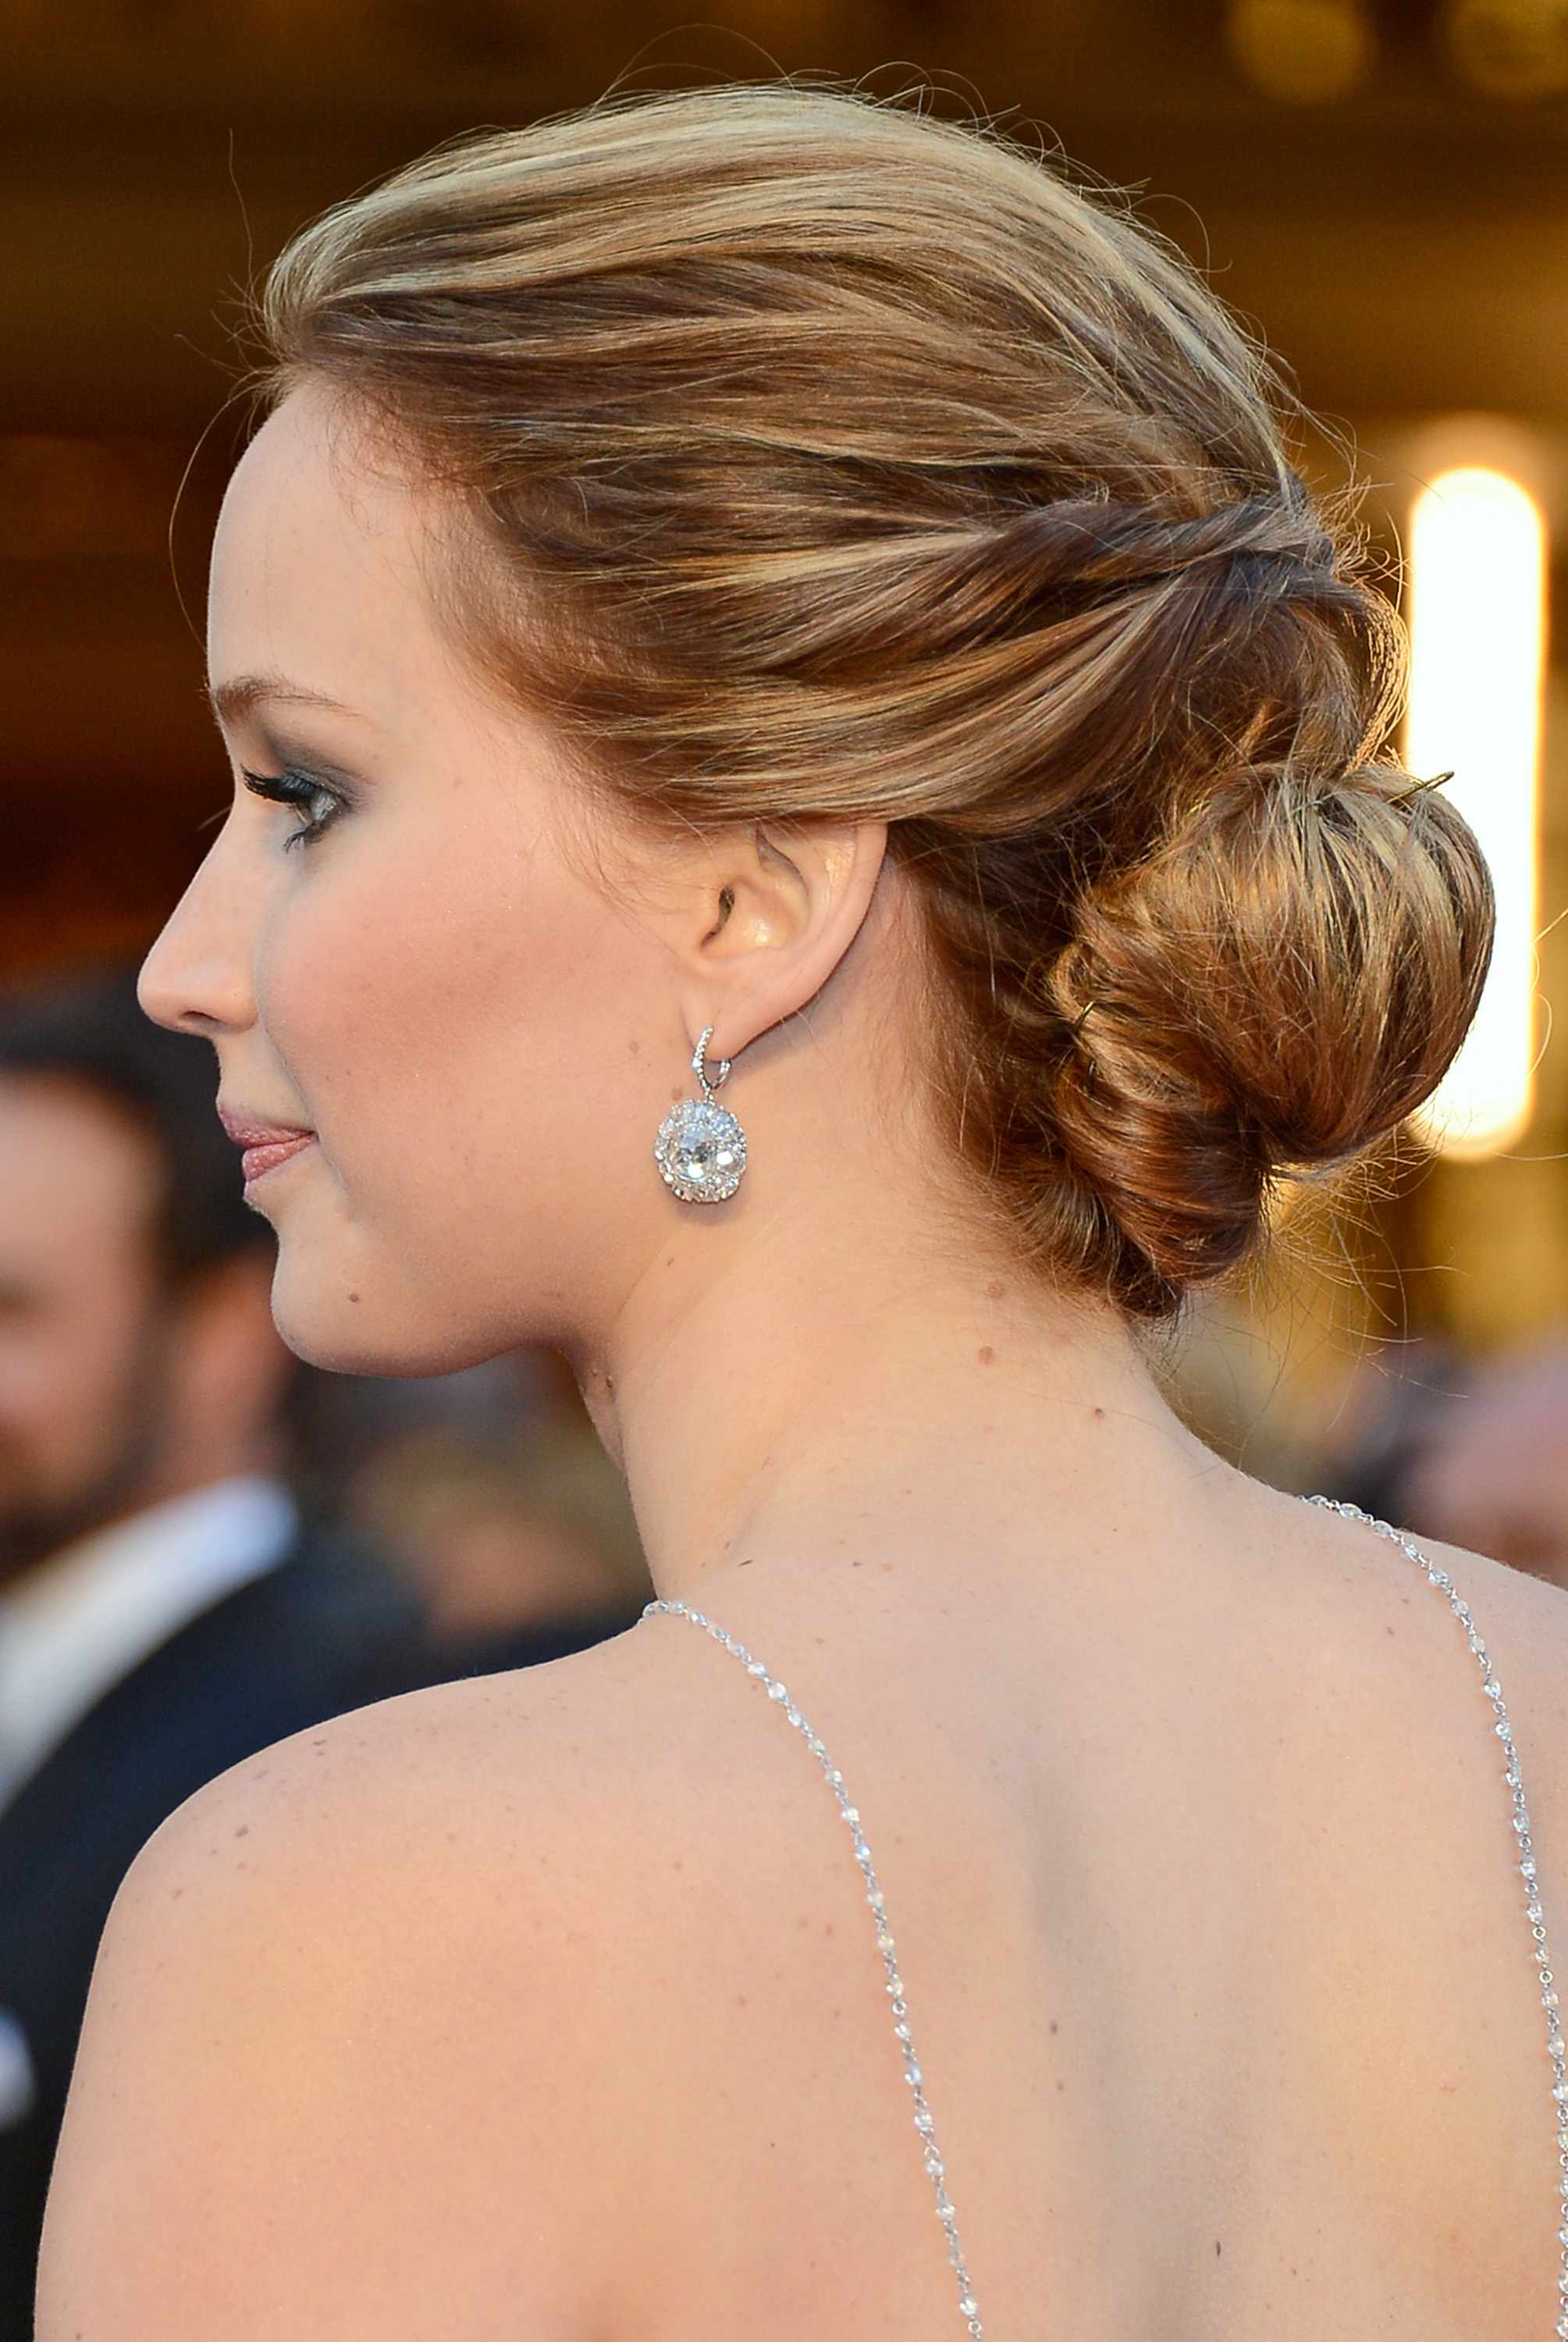 Easy Updo Hairstyles for Formal Events Elegant Updos to Try